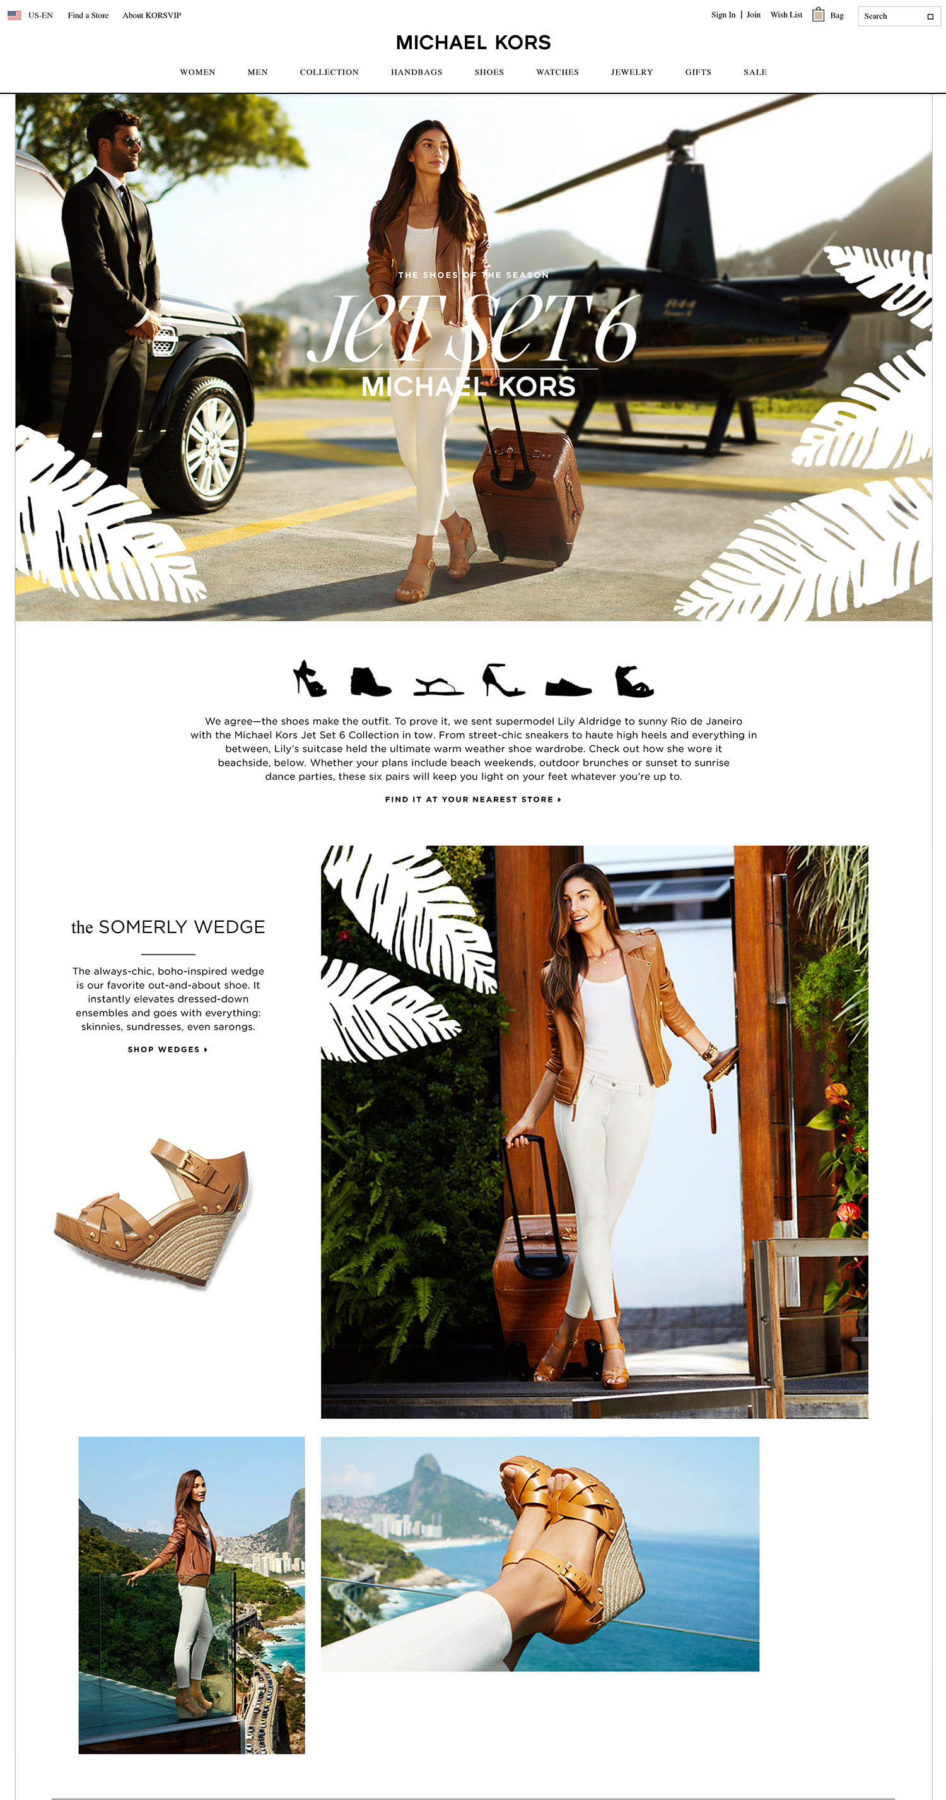 Michael Kors Jet Set 6 | Destination Kors _WEB EXECUTION_sm_p1